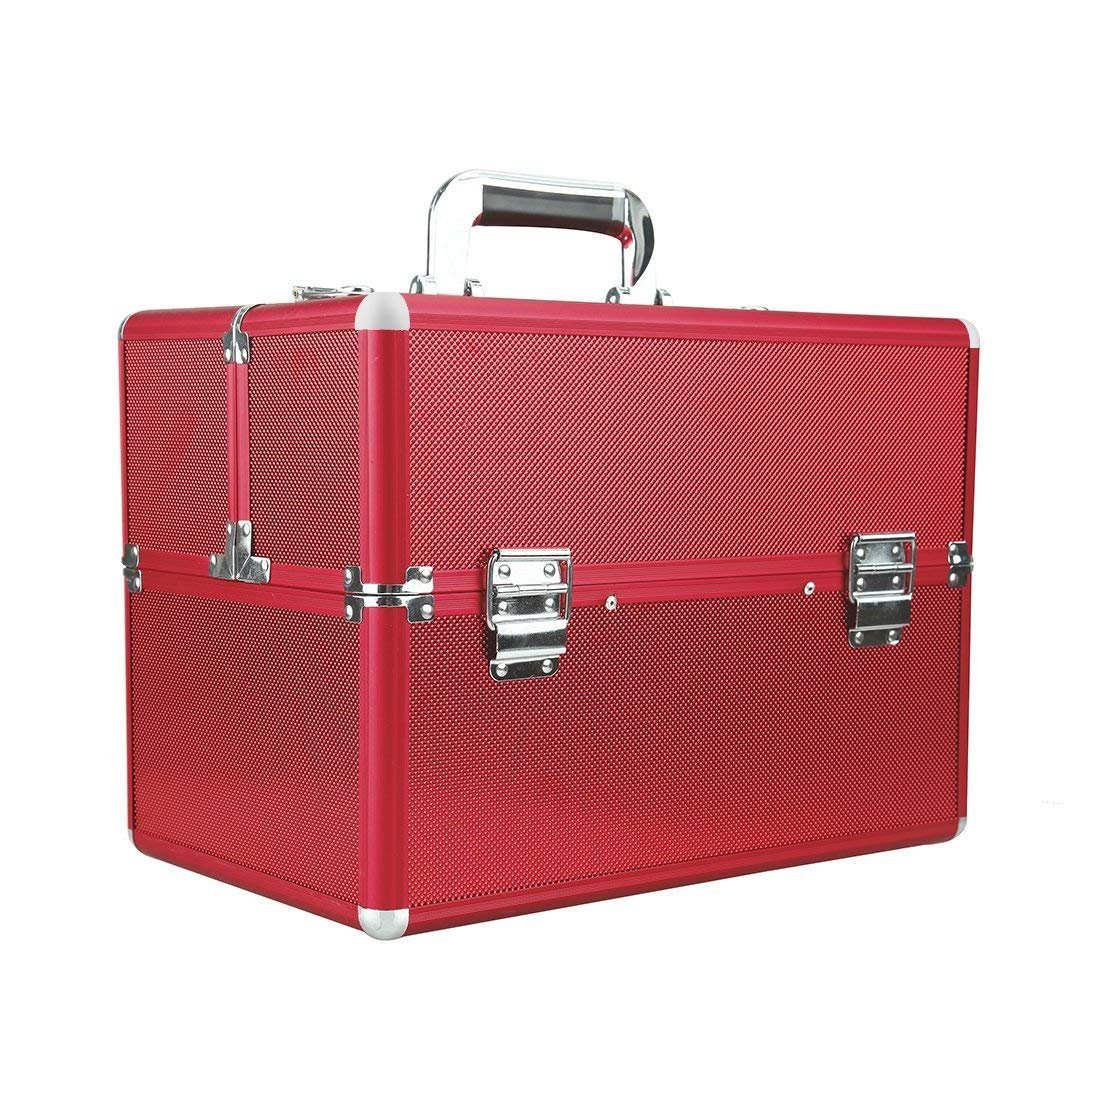 Makeup Train Cases Professional Large Make Up Boxes Artist Organizer Kit Makeup Cases Red